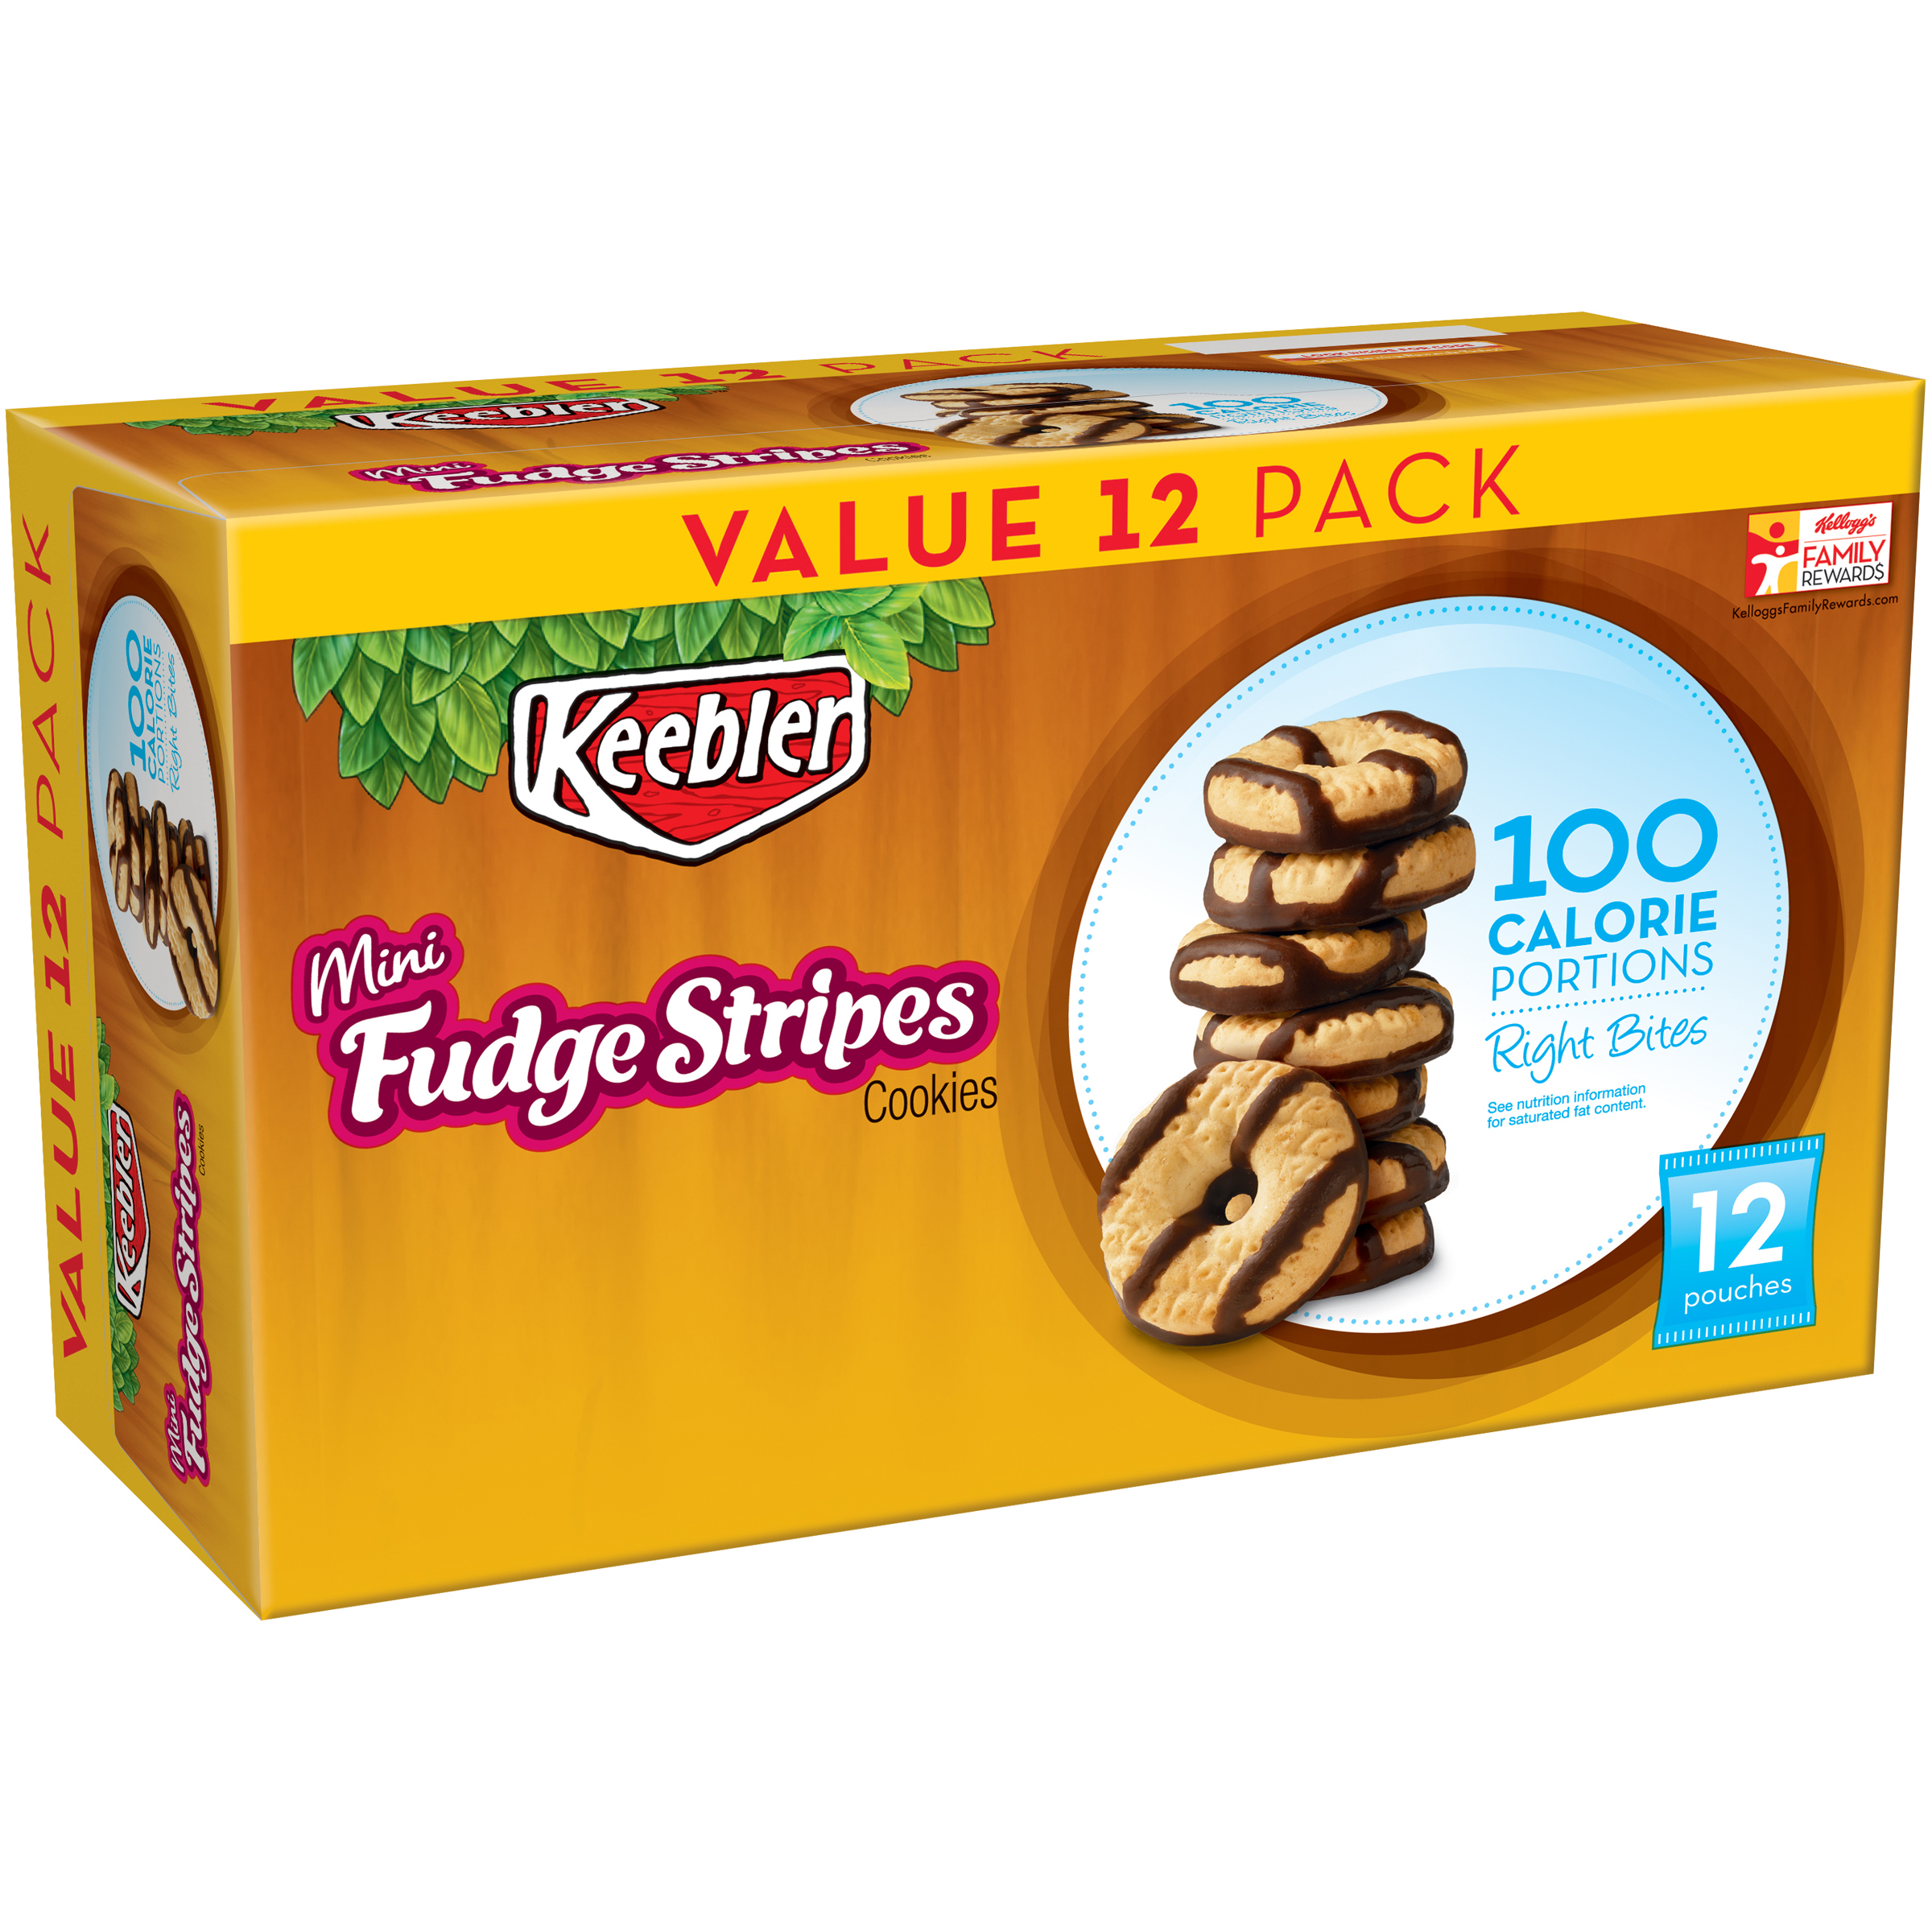 Keebler® 100 Calorie Right Bites™ Fudge Stripes™ Mini Cookies 12-0.74 oz. Pouches